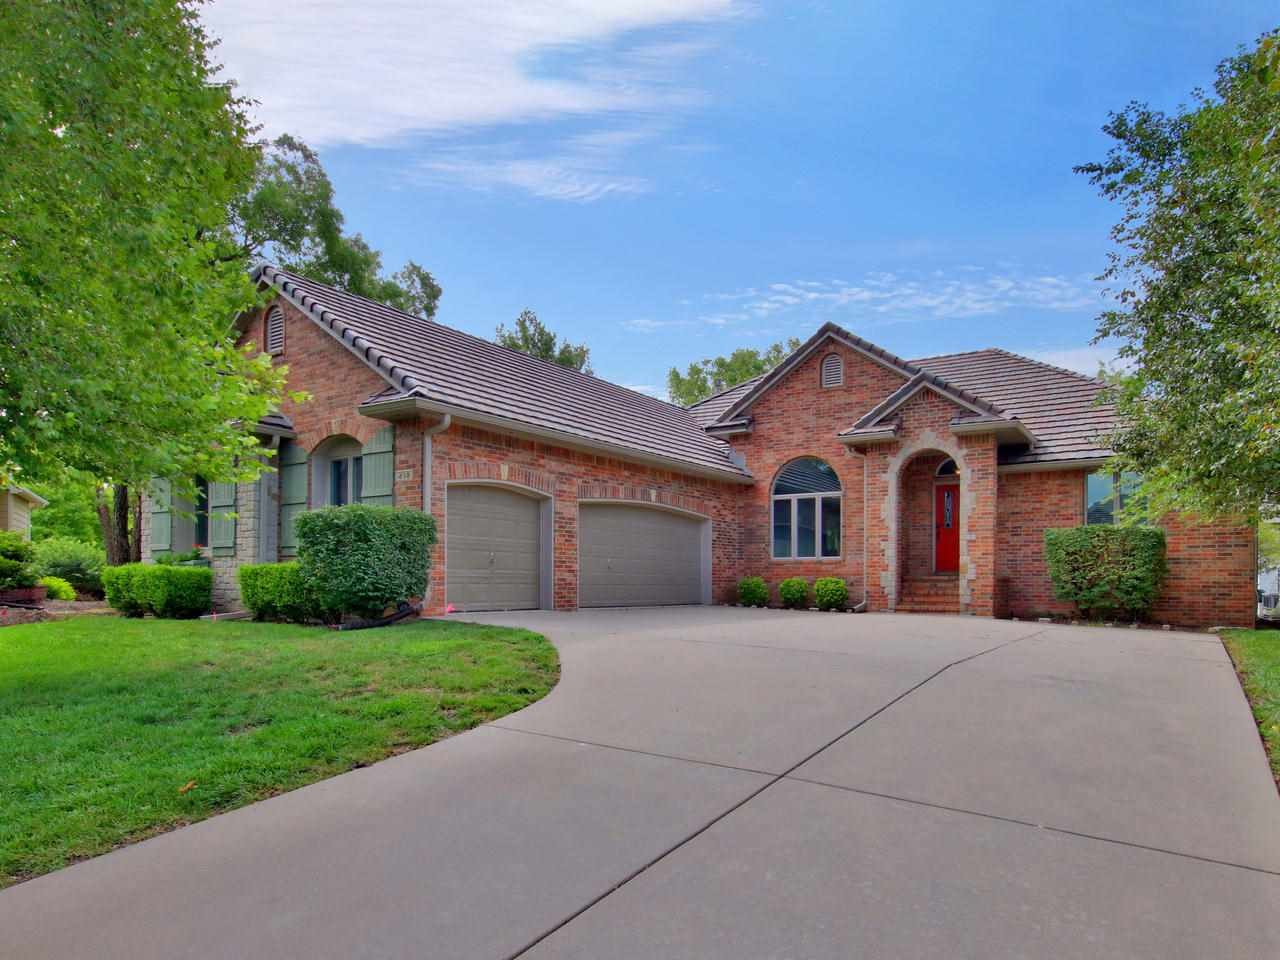 Gorgeous 6 bedroom home in Bridgefield Addition. Andover Central school district. No specials to wor